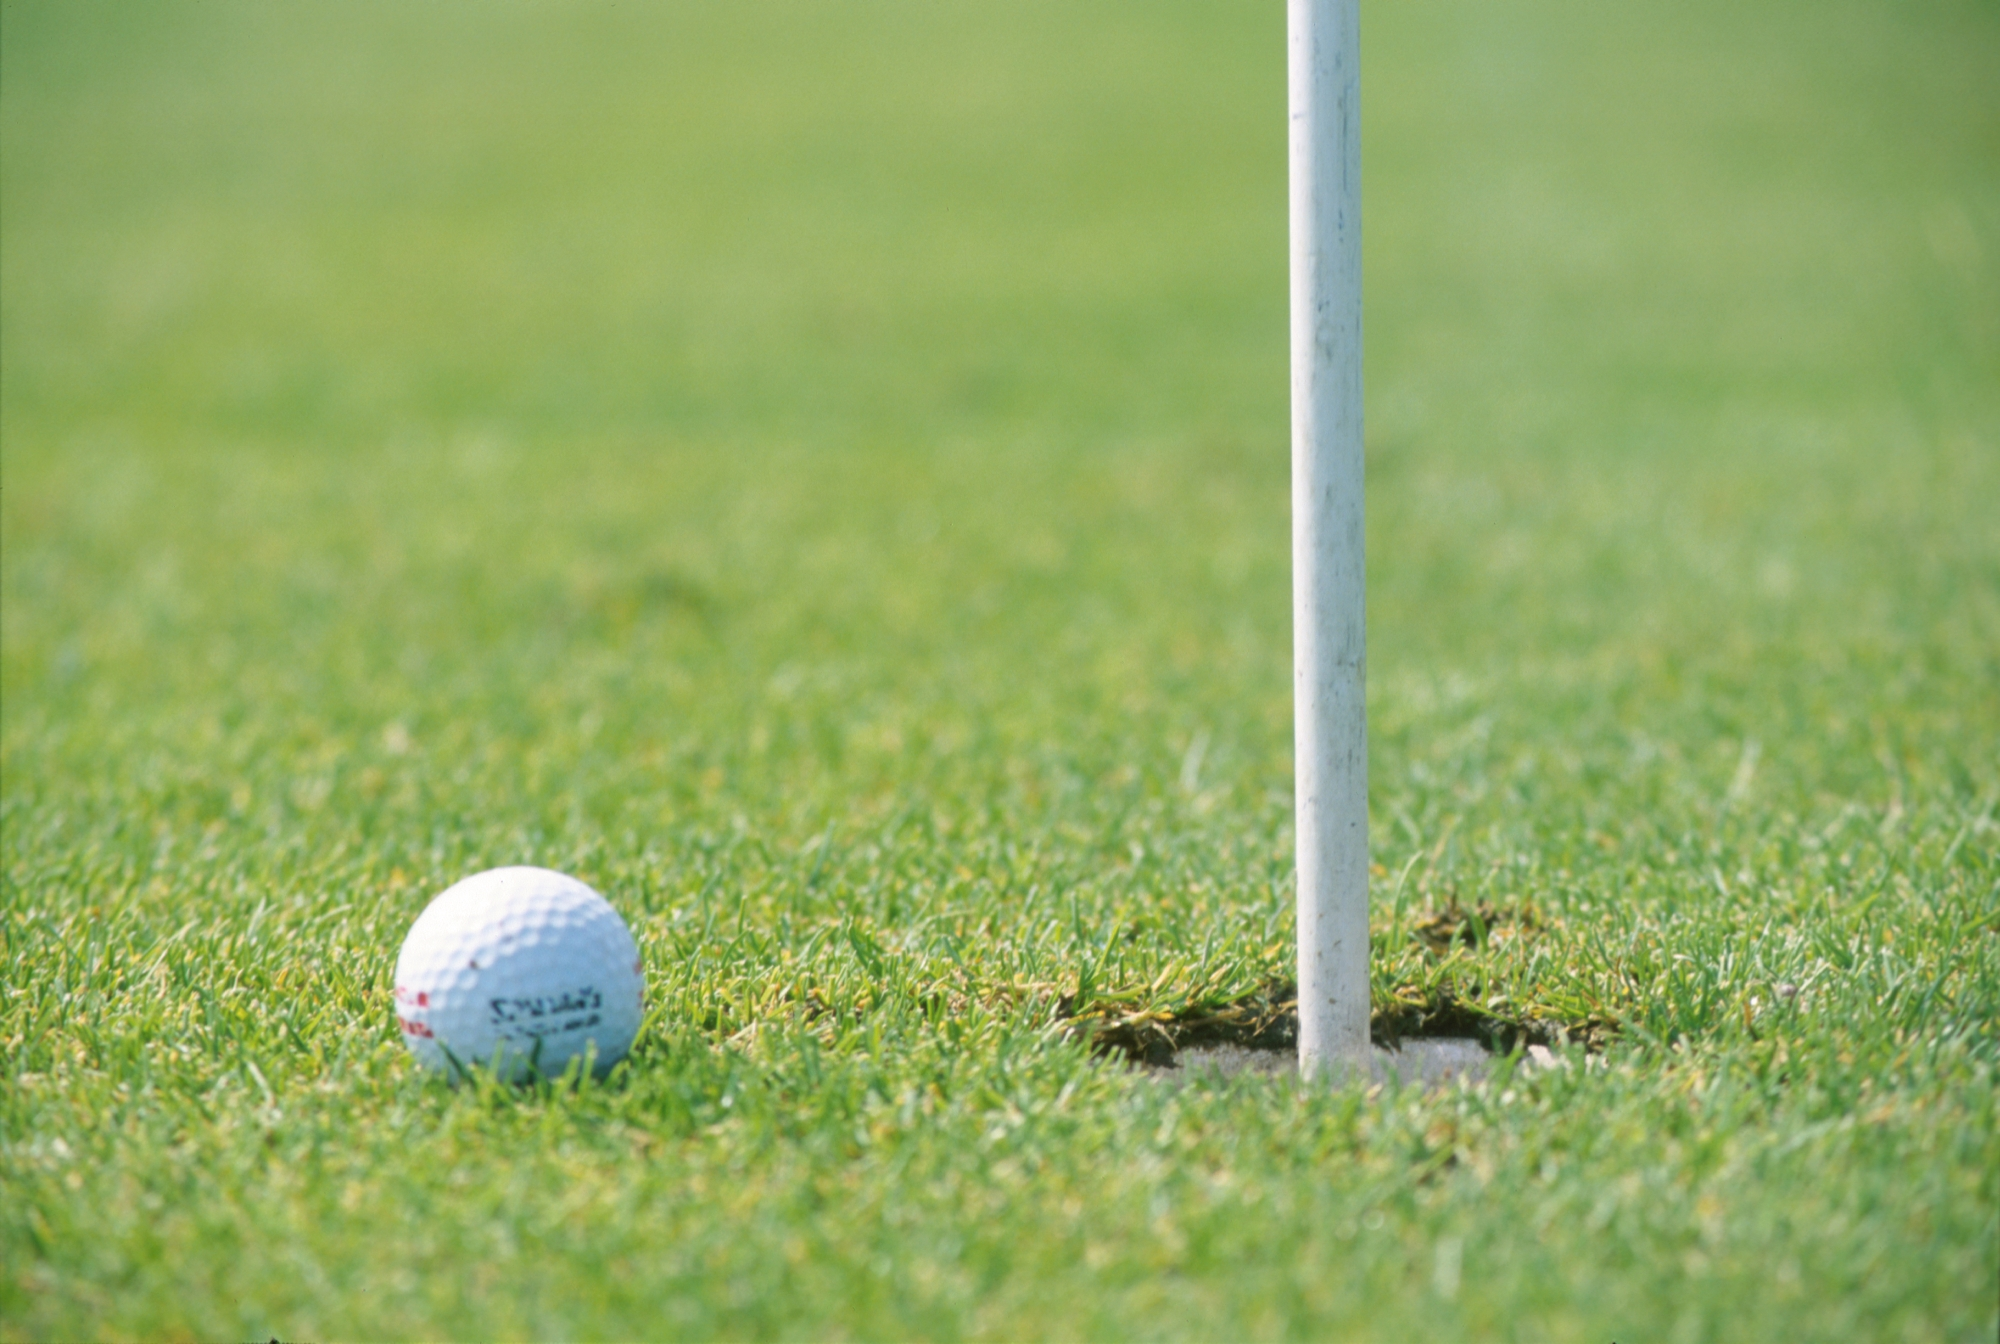 Research has been approved for development opportunities at Melville Glades Golf Course.